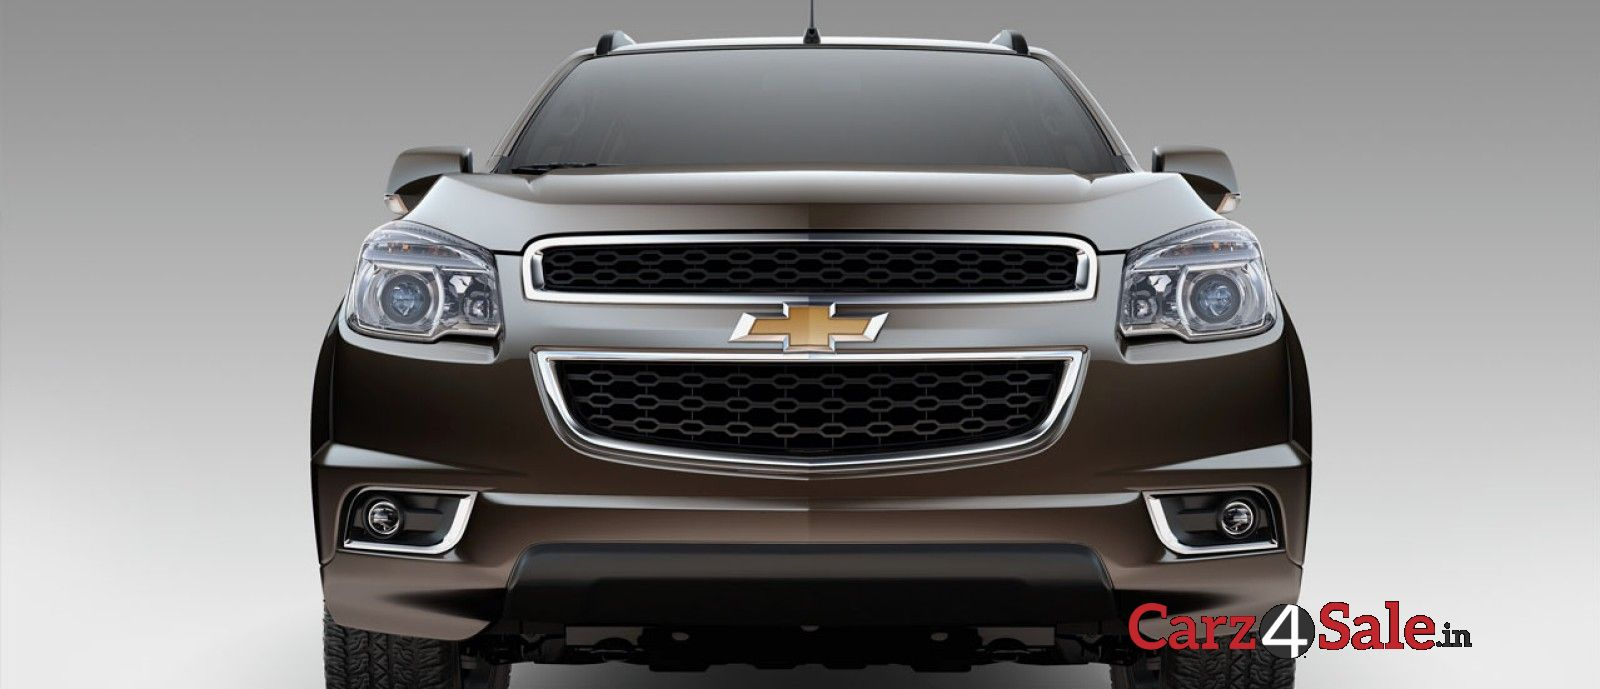 chevrolet-trailblazer-ltz-2-8-4x4-at-pic-3